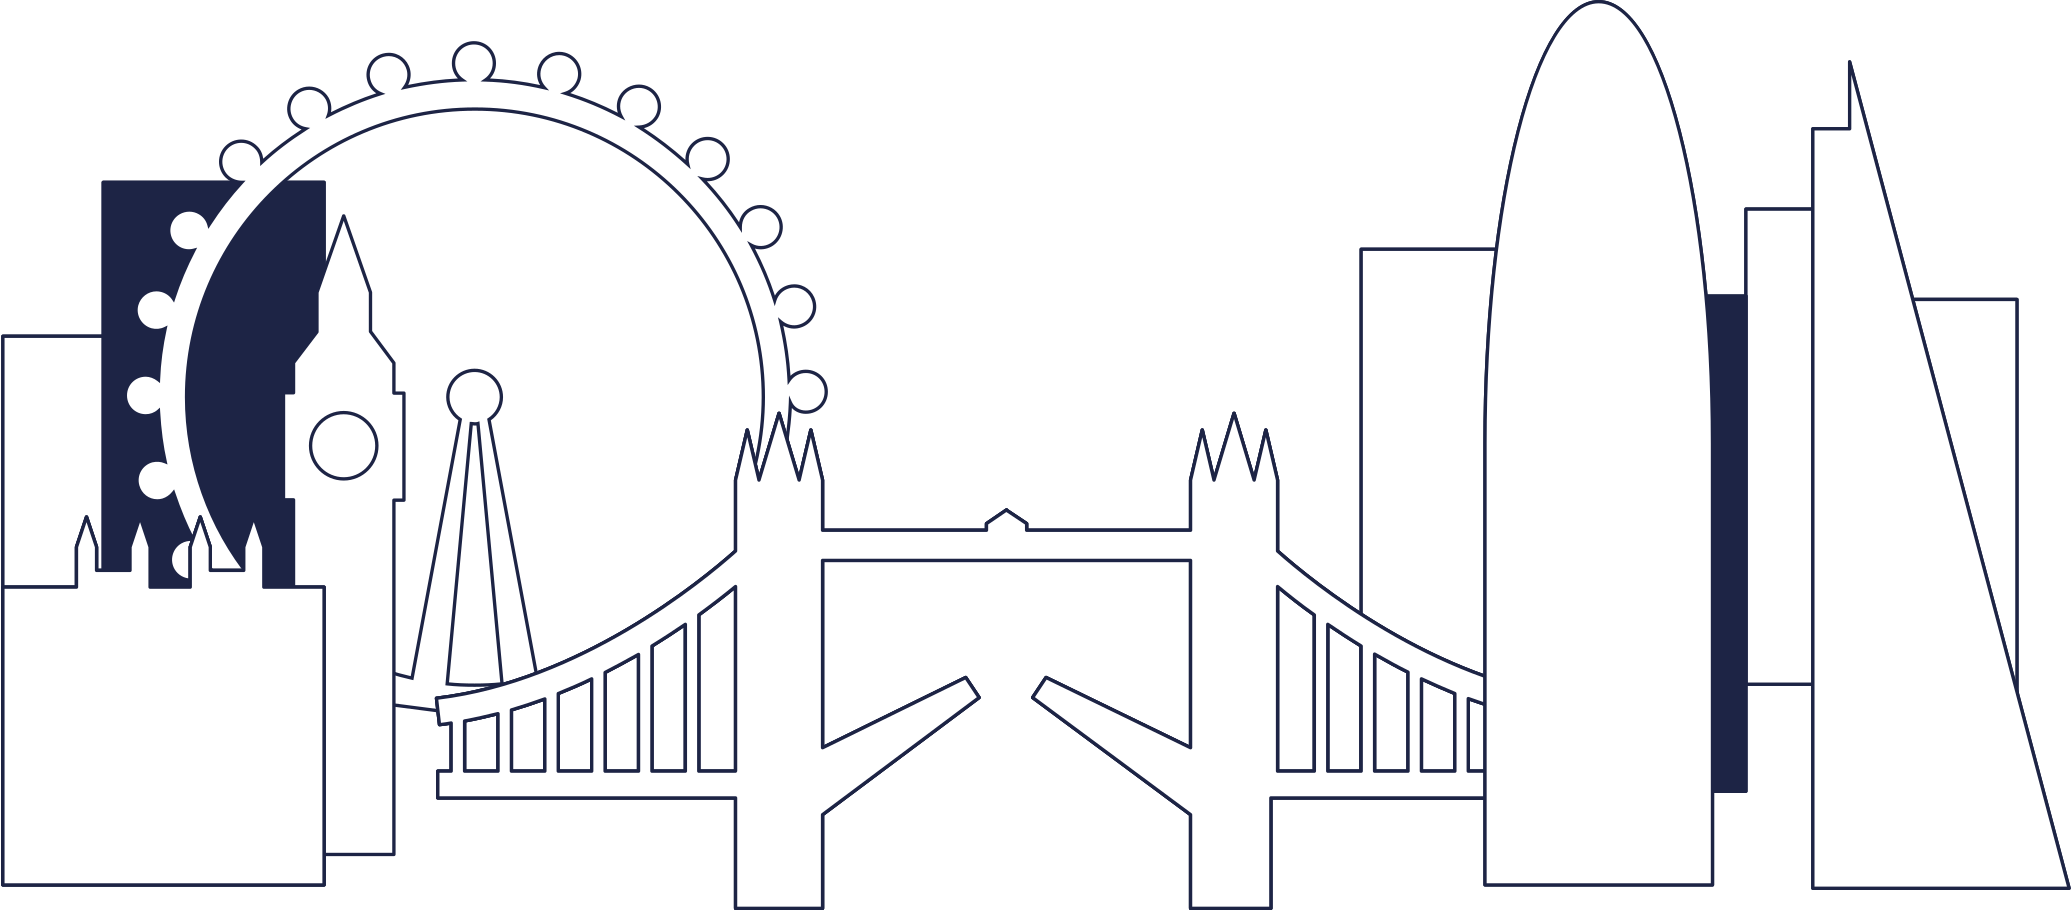 style london background line Vector images in PNG and SVG   Icons8 Illustrations